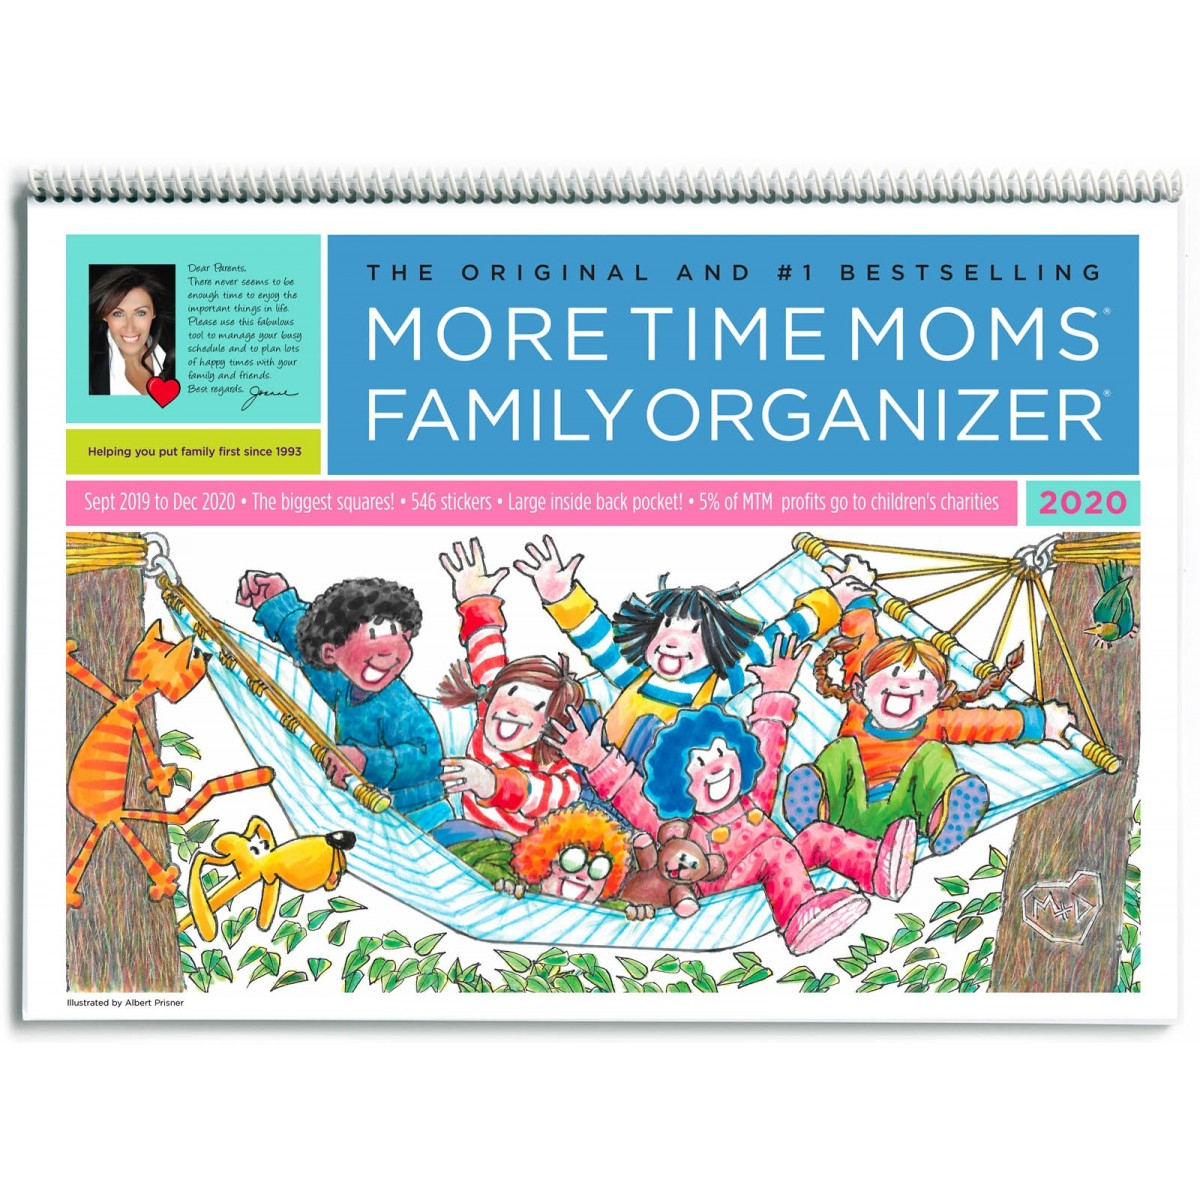 Family Organizer 2020 | More Time Moms